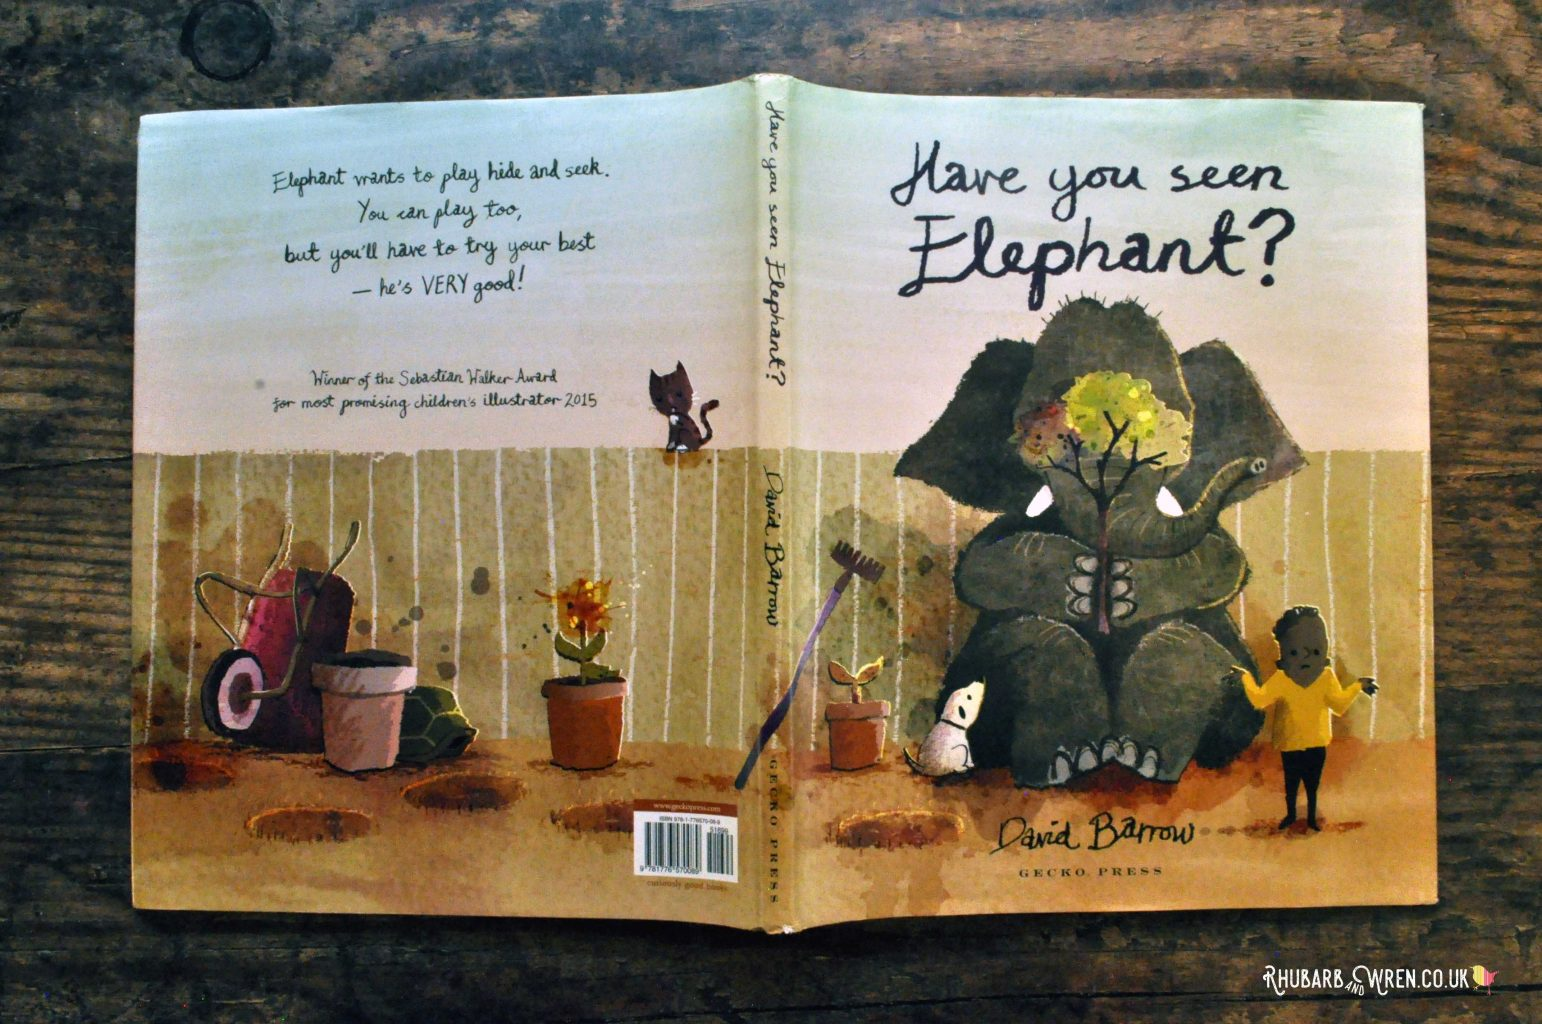 The front and back cover of Have You Seen Elephant? by David Barrow.